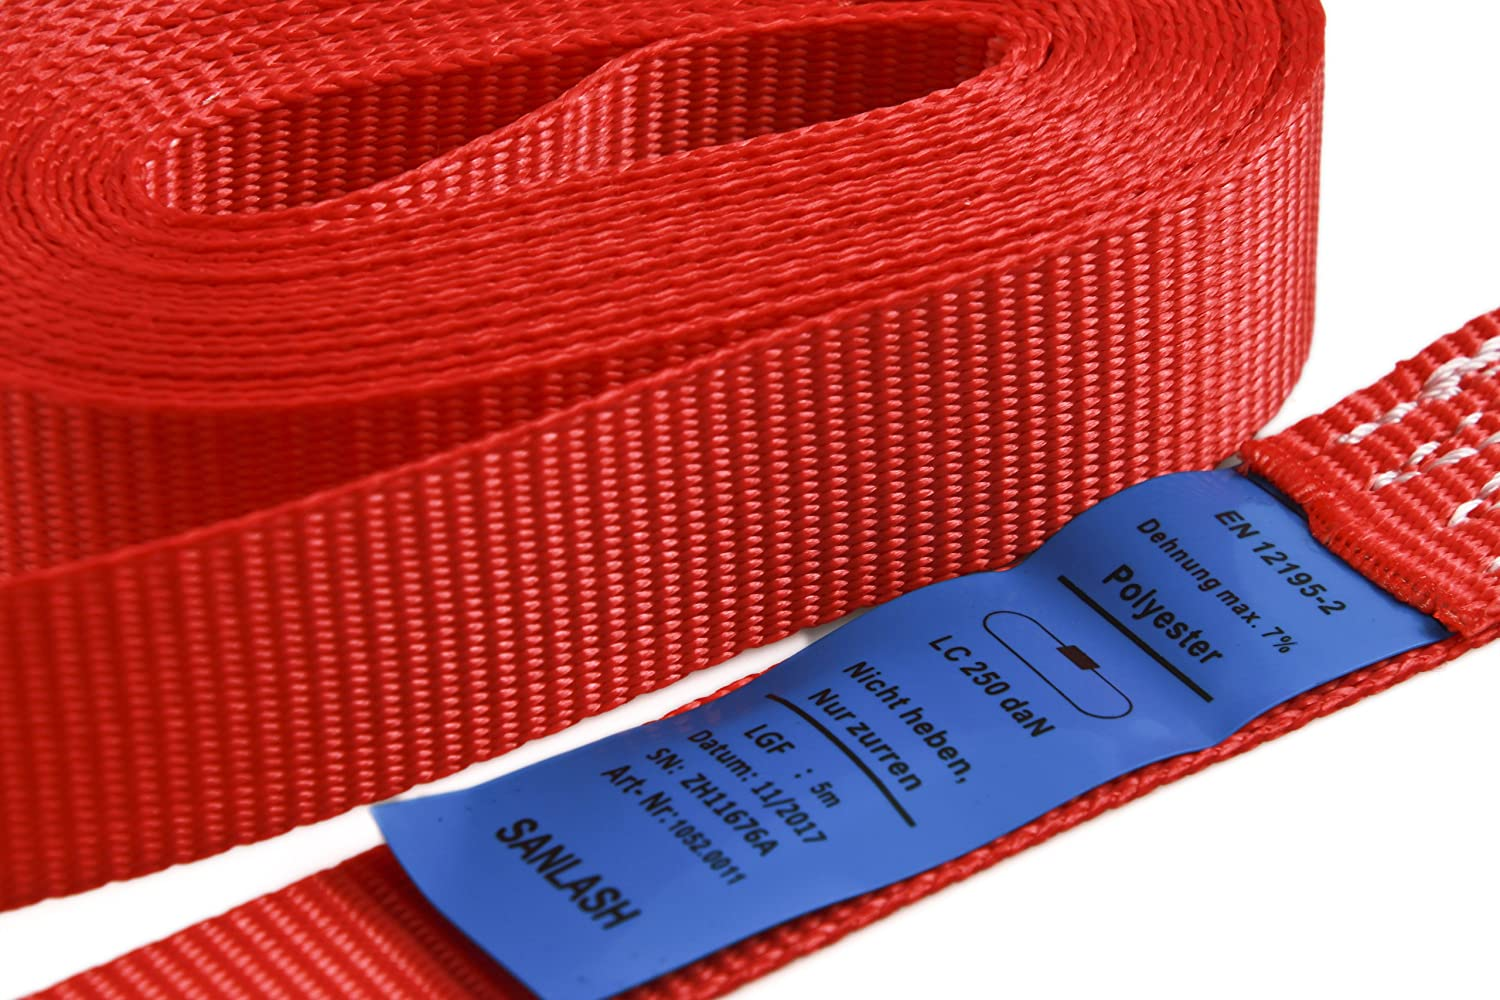 According to DIN EN 12195-2 Set of 6 cam Buckle tie Down Straps one-Piece loadable up to 250kg Yellow Length 3m Width 25mm